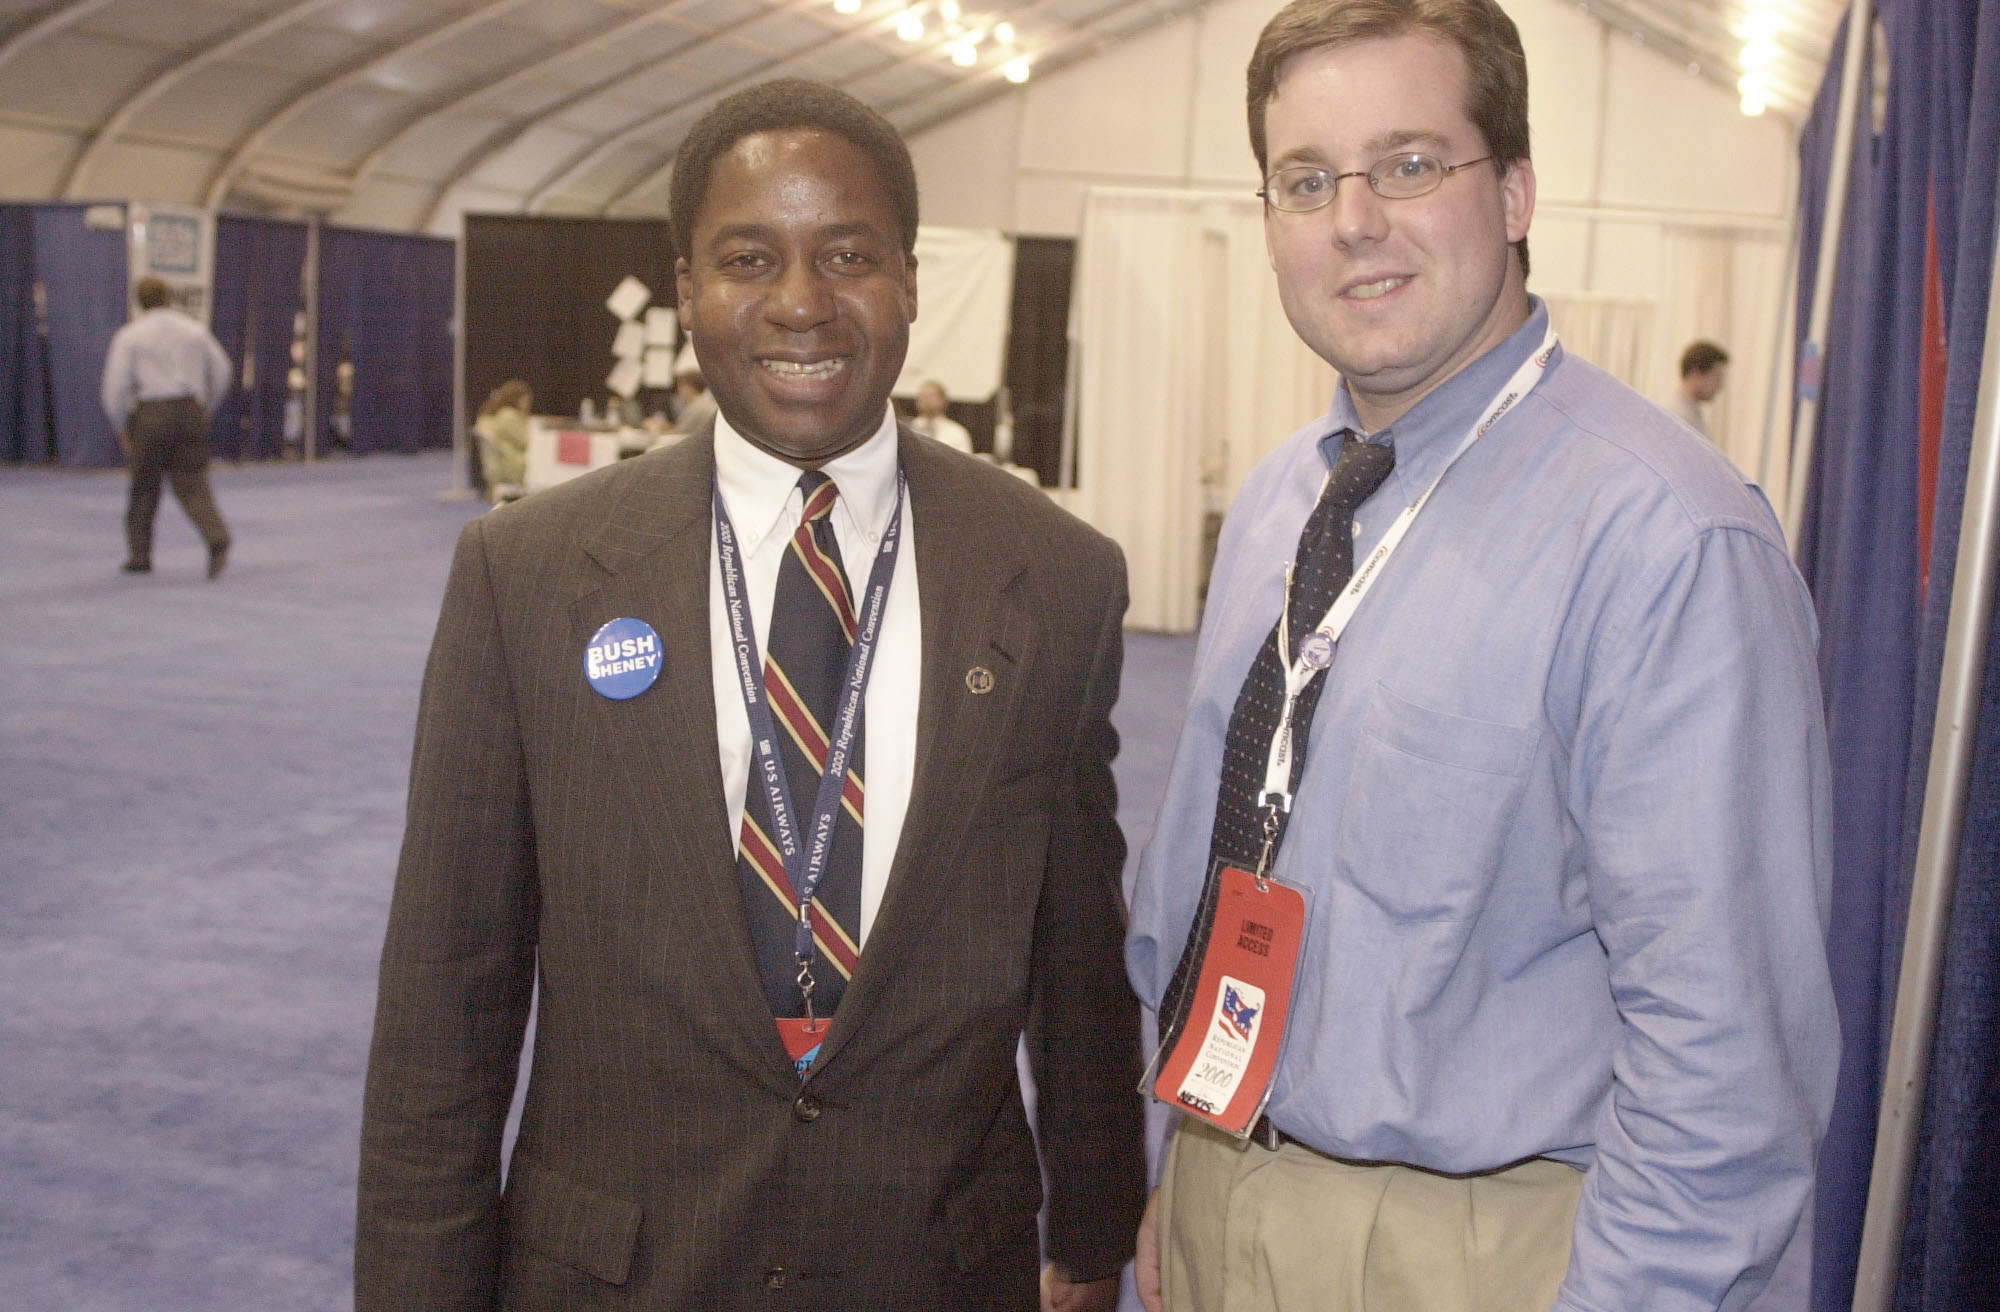 GOPconvention2(TW)080200 --Jack E. Robinson and Roll Call Co-Editor Ed Henry.